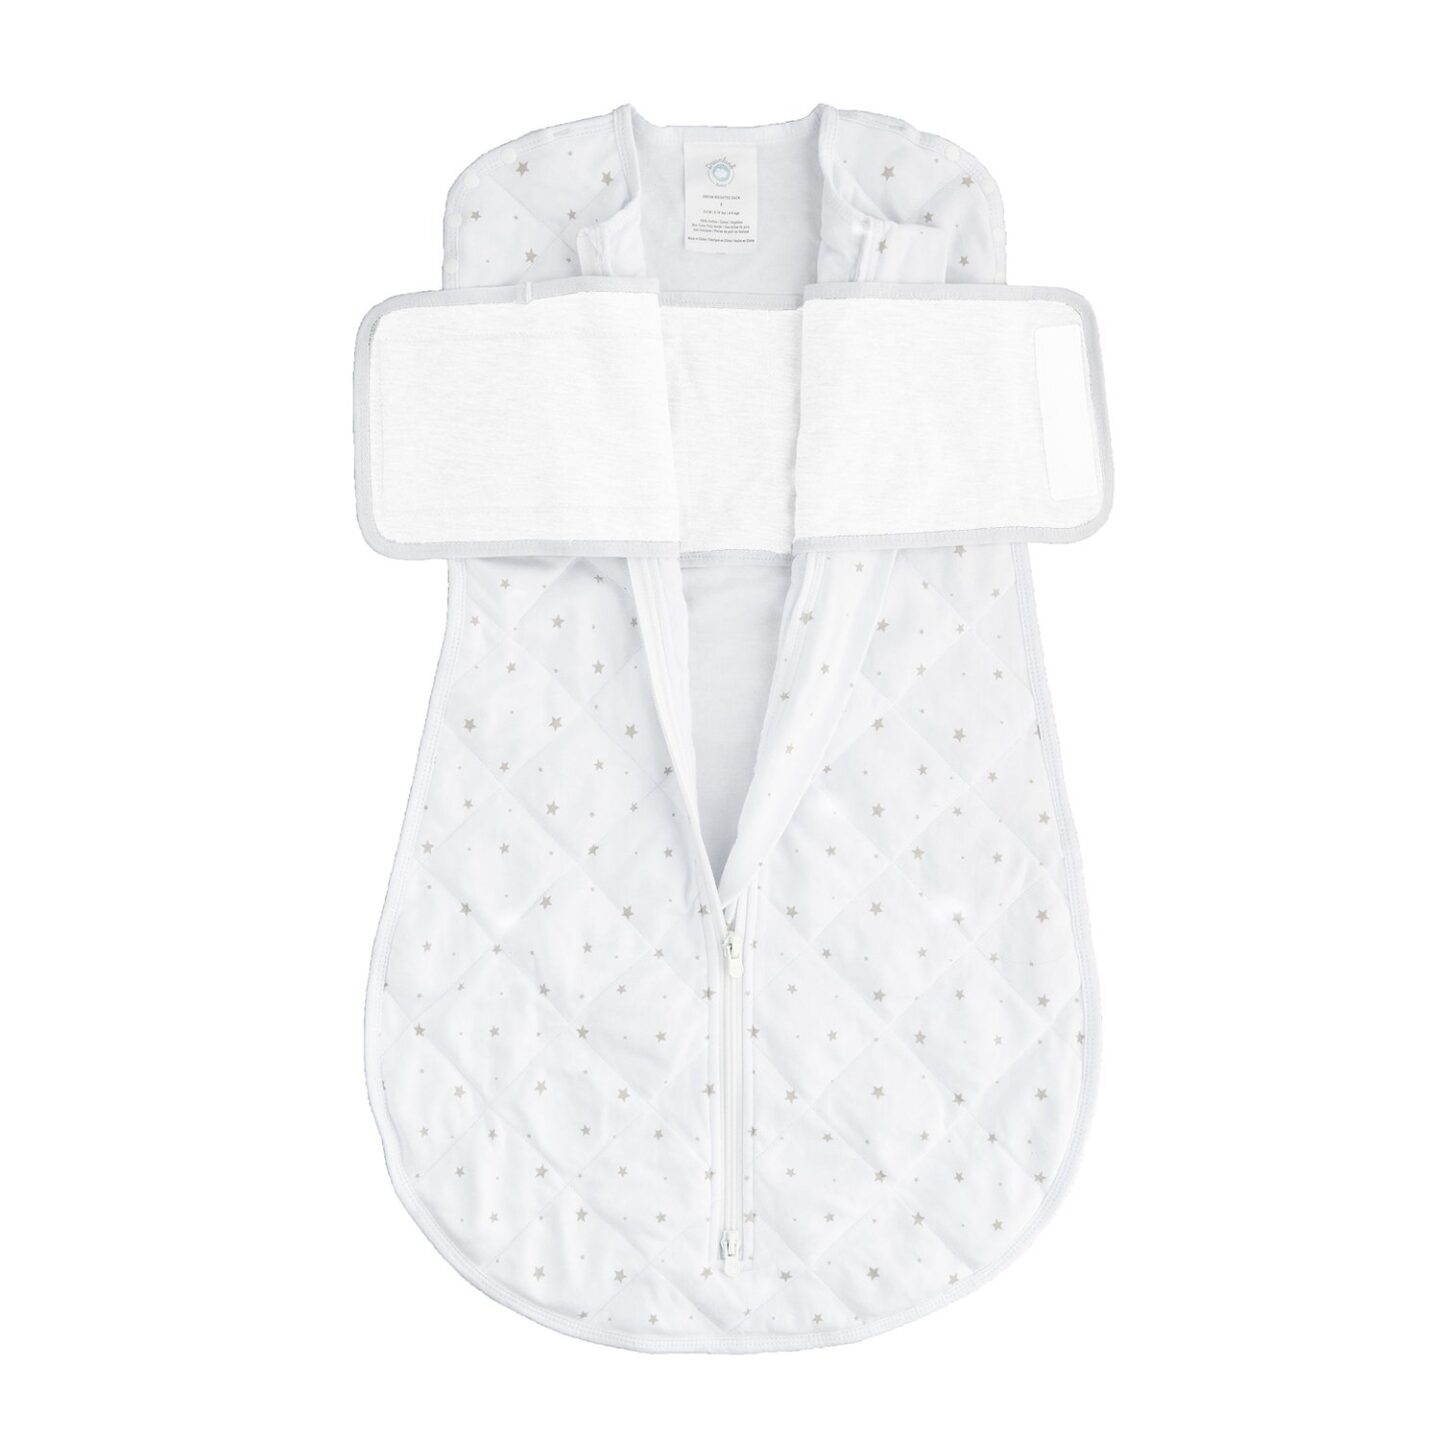 Weighted swaddle blanket from Dreamland Baby